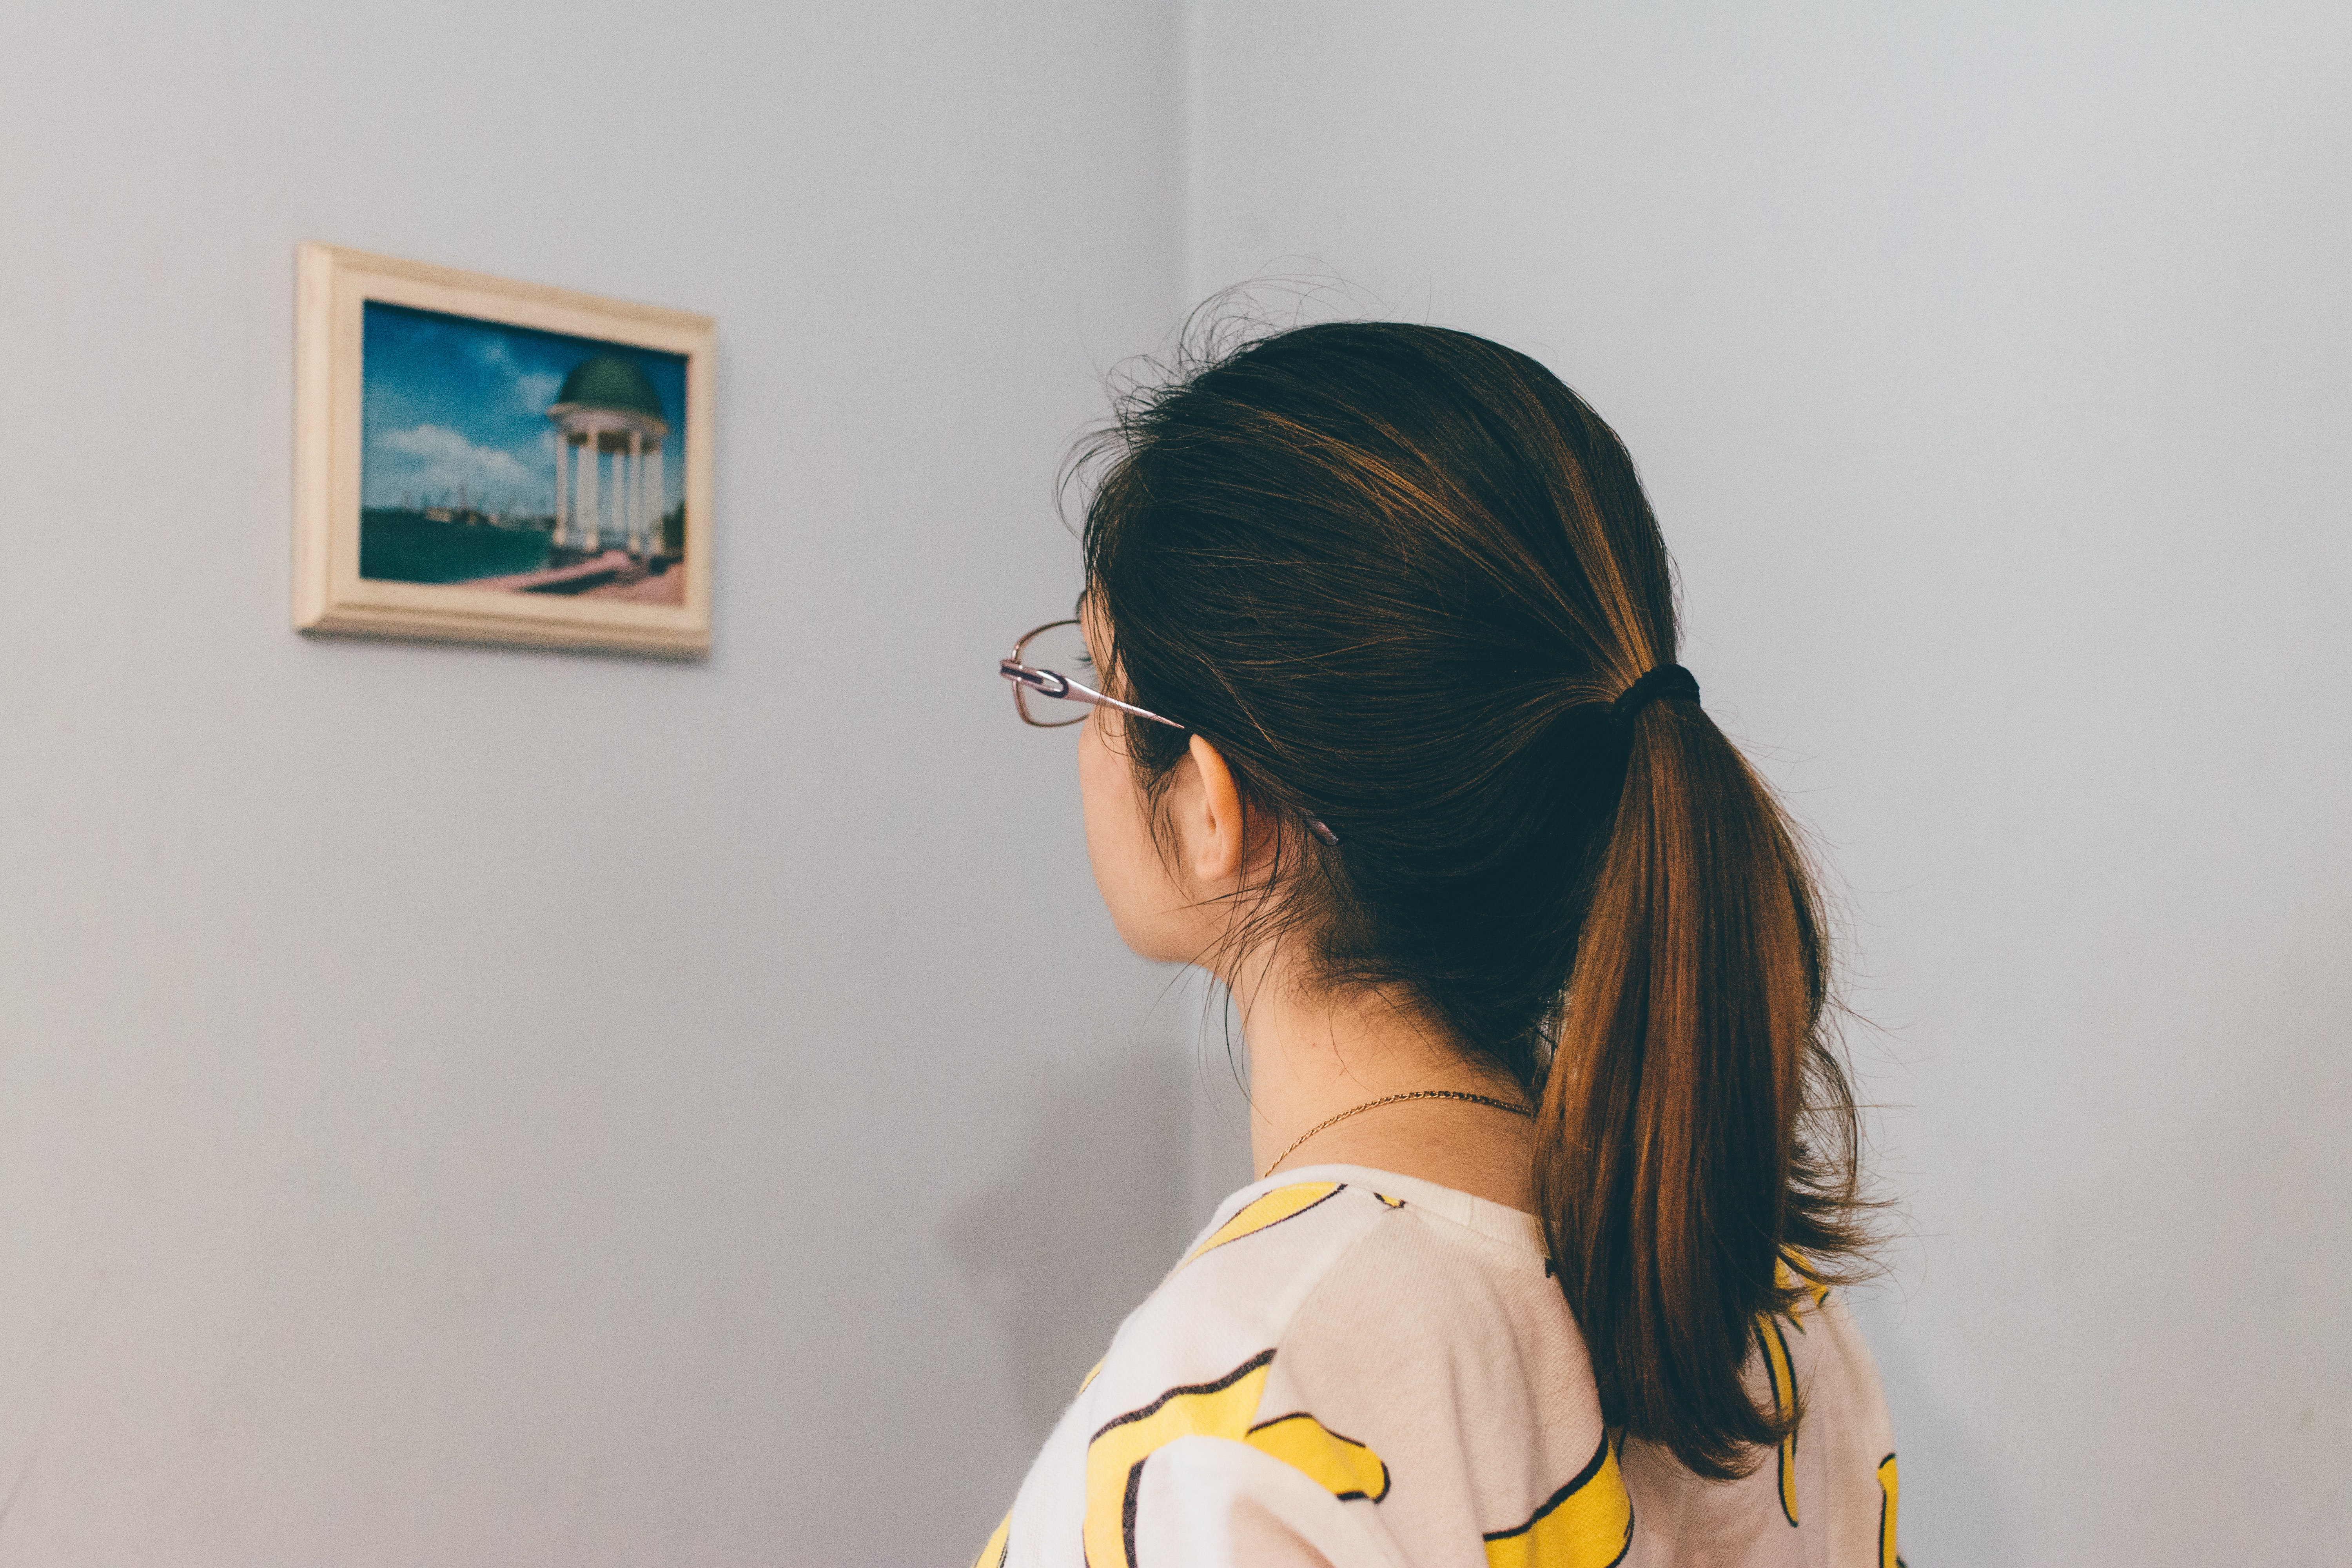 woman looking at photo on wall inside room